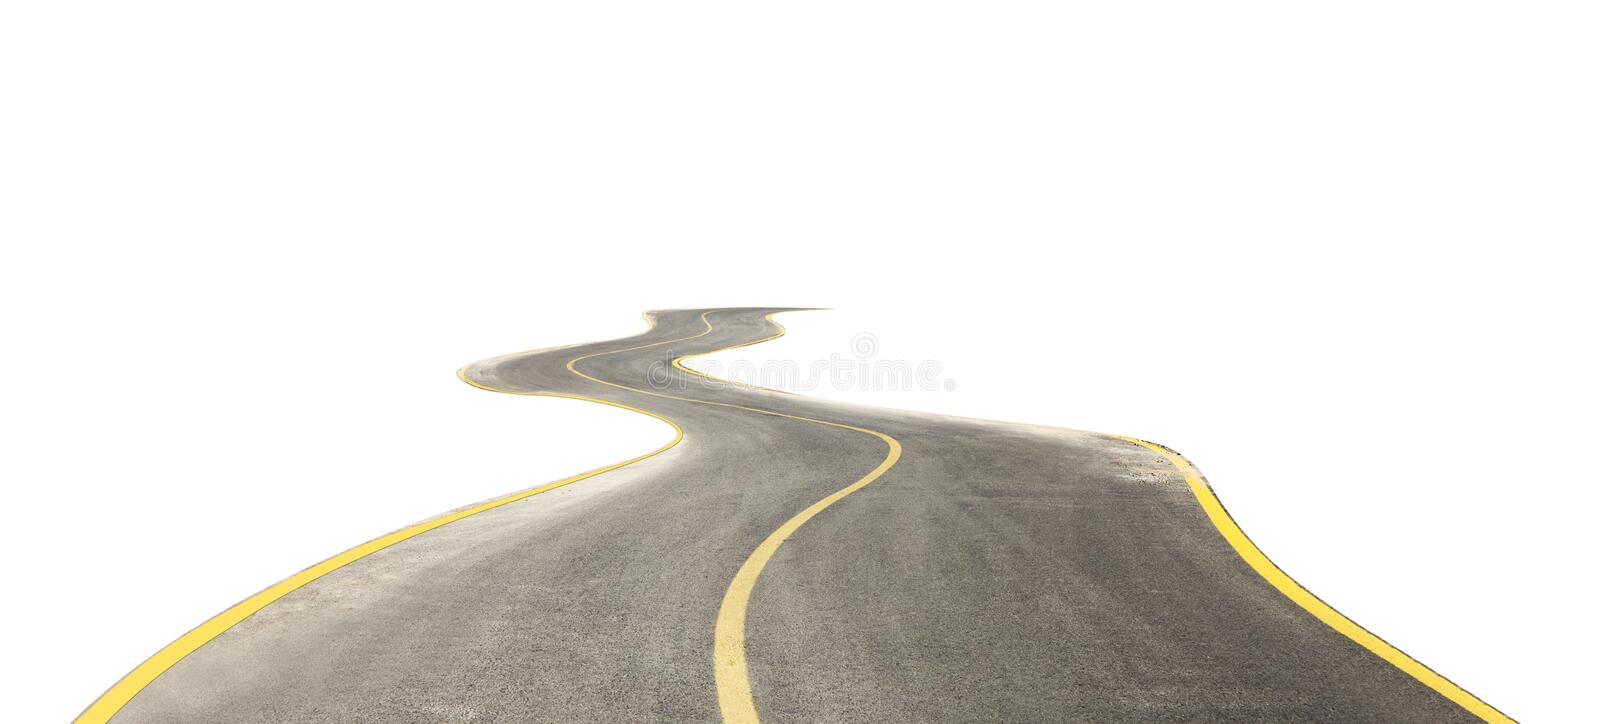 Curved road isolated on white royalty free stock photos